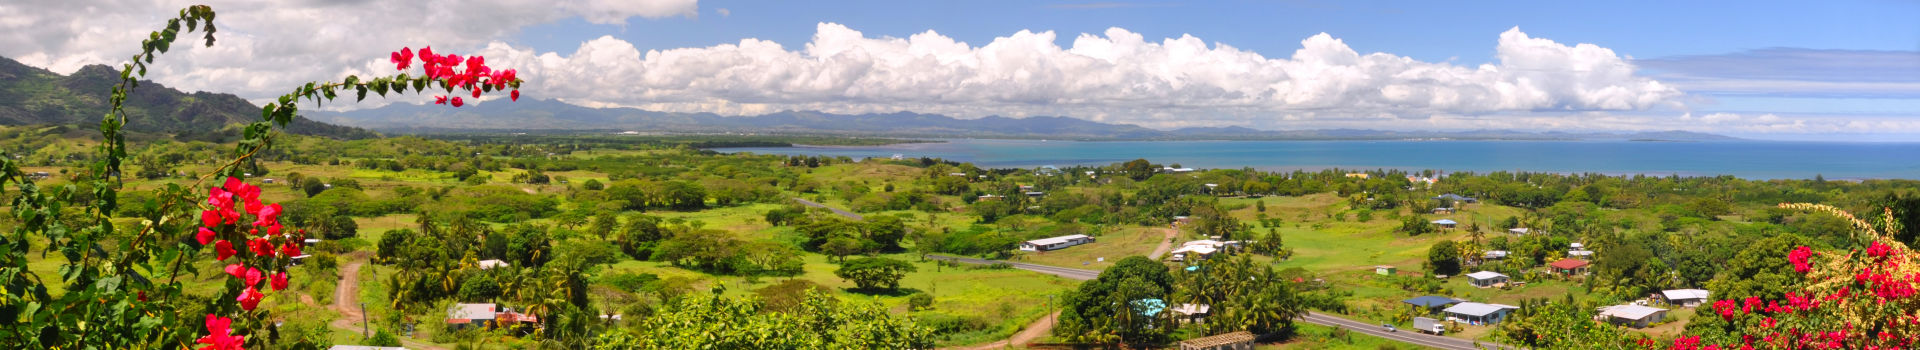 Redseason - Holidays - Panorama Of The Fijian West Coast